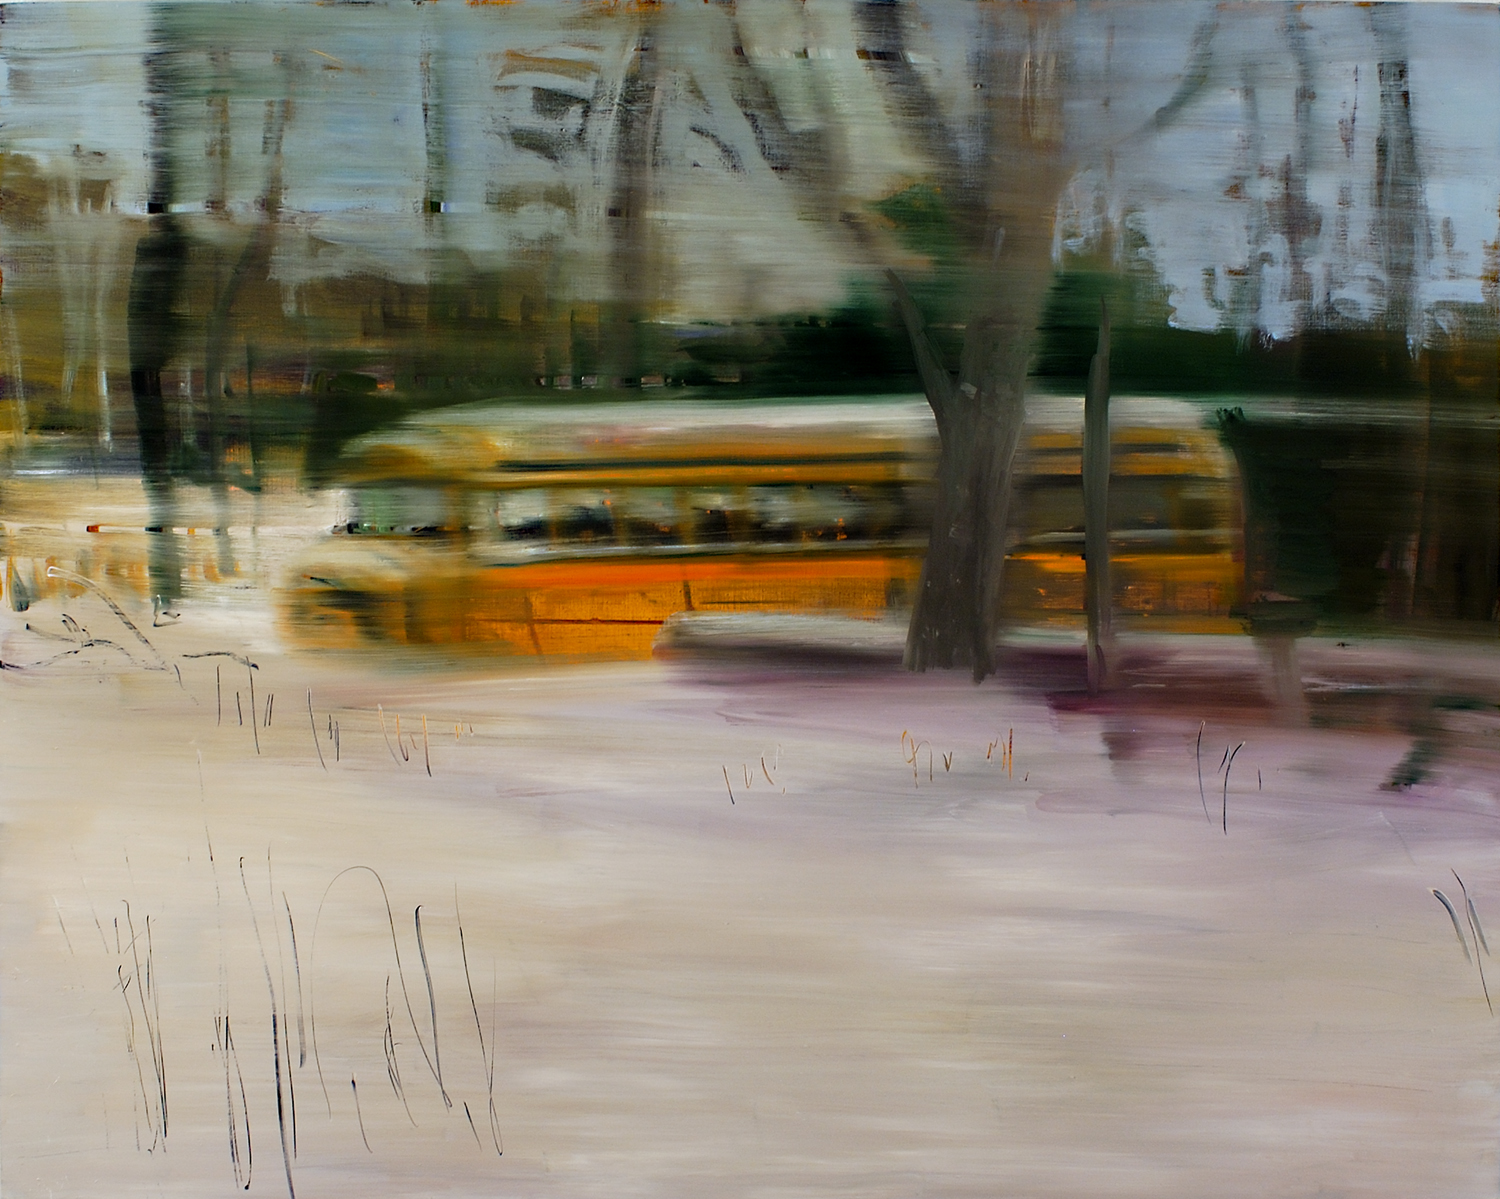 Bus in Snow, 2005